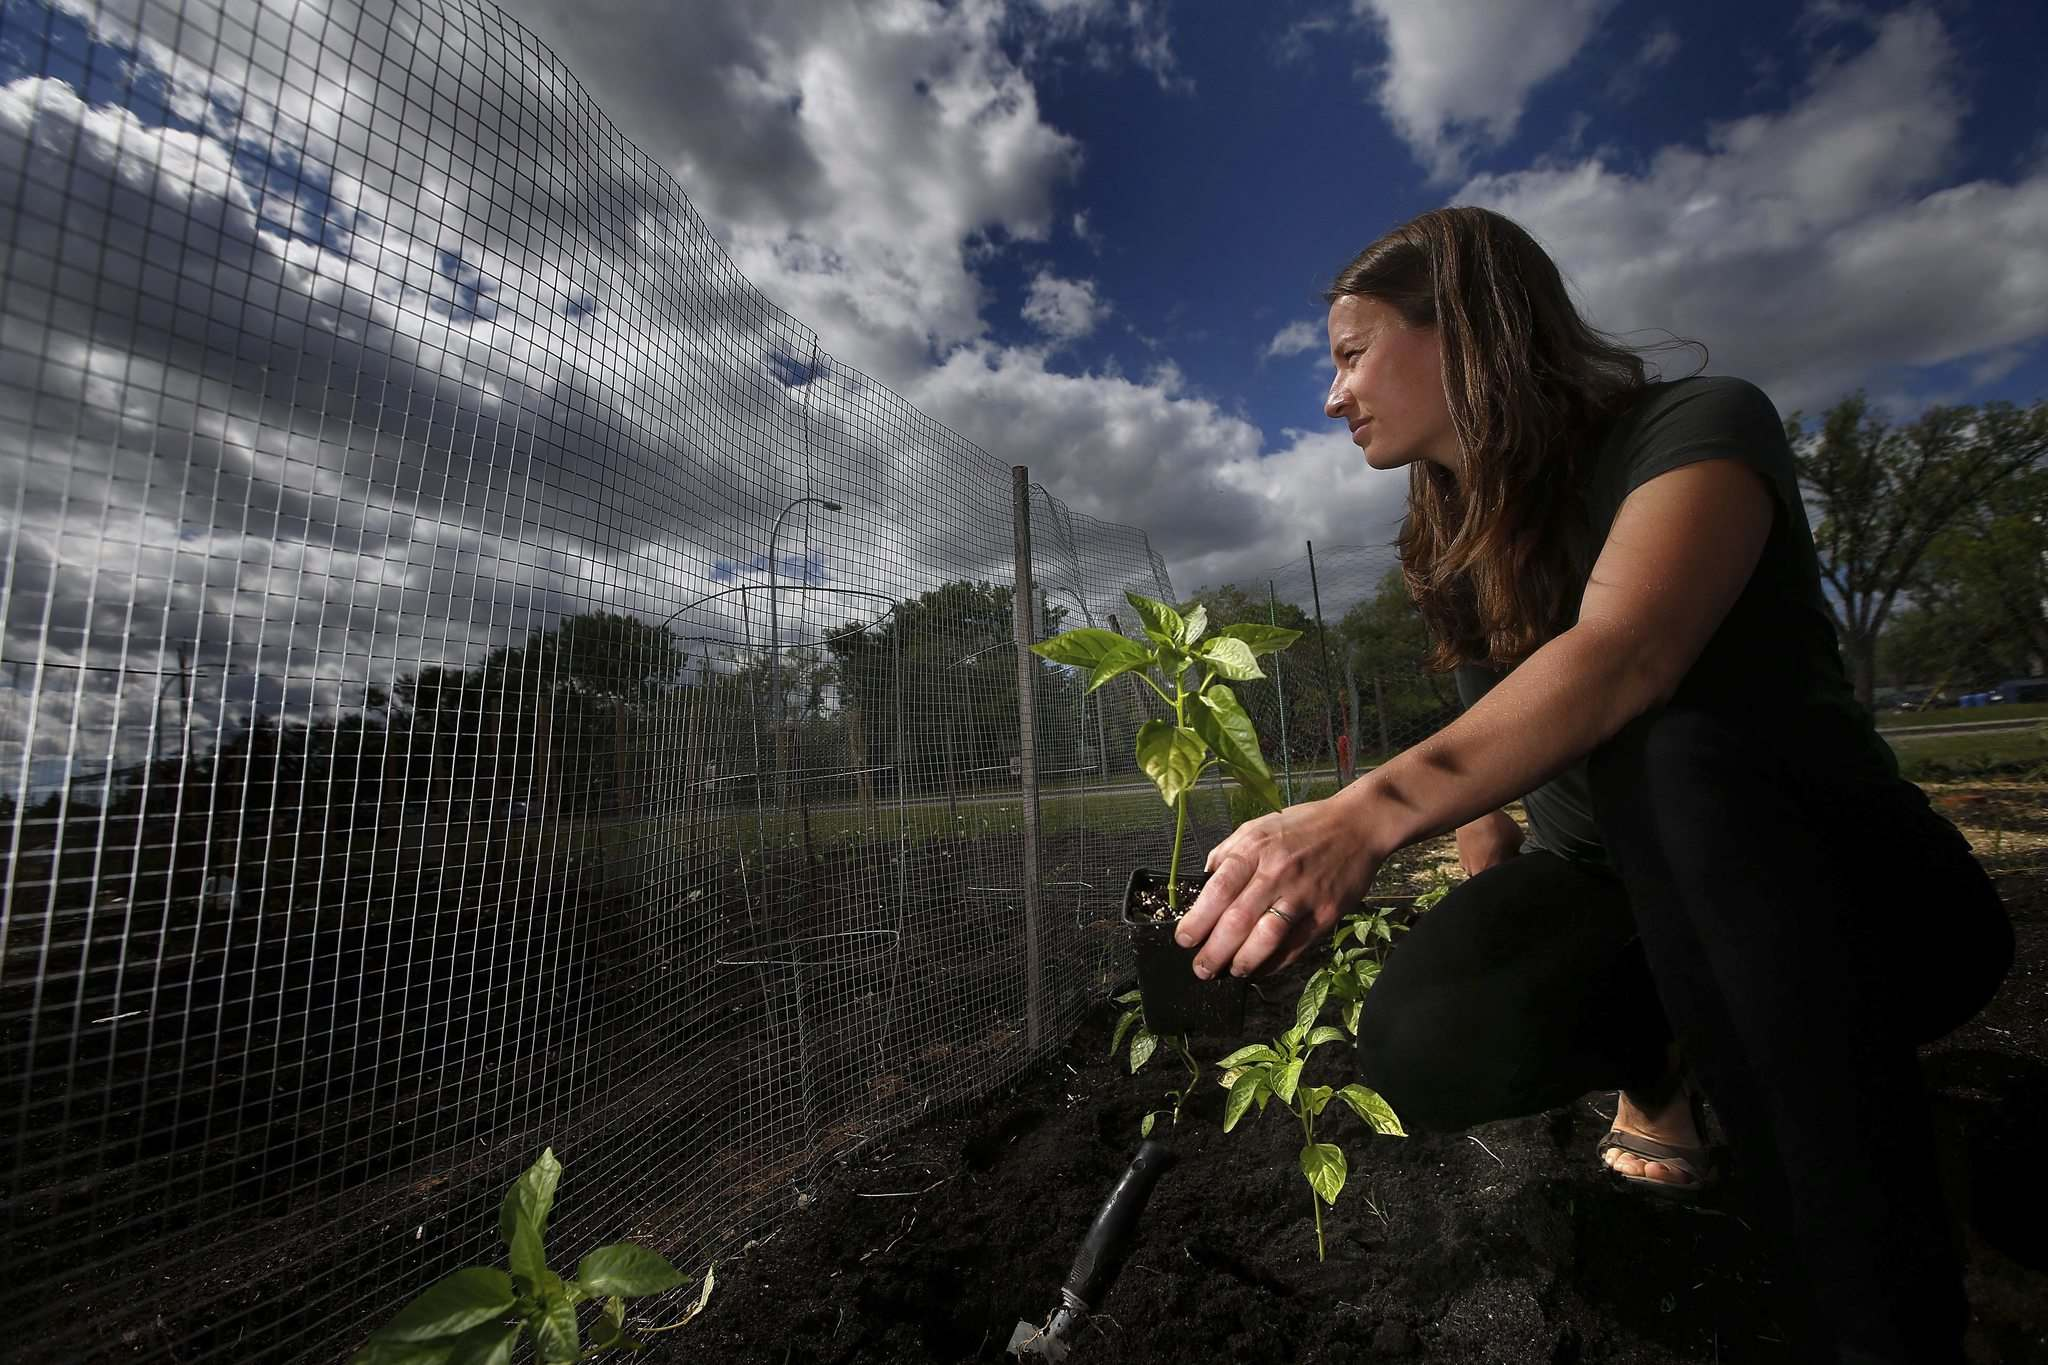 JOHN WOODS / WINNIPEG FREE PRESS</p><p>Jeanette Sivilay, co-ordinator for the Winnipeg Food Council, does some planting in her garden plot at the Grant Avenue Community Garden. She says community gardens are seeing growth as COVID-19 highlights the issue of food security.</p></p>